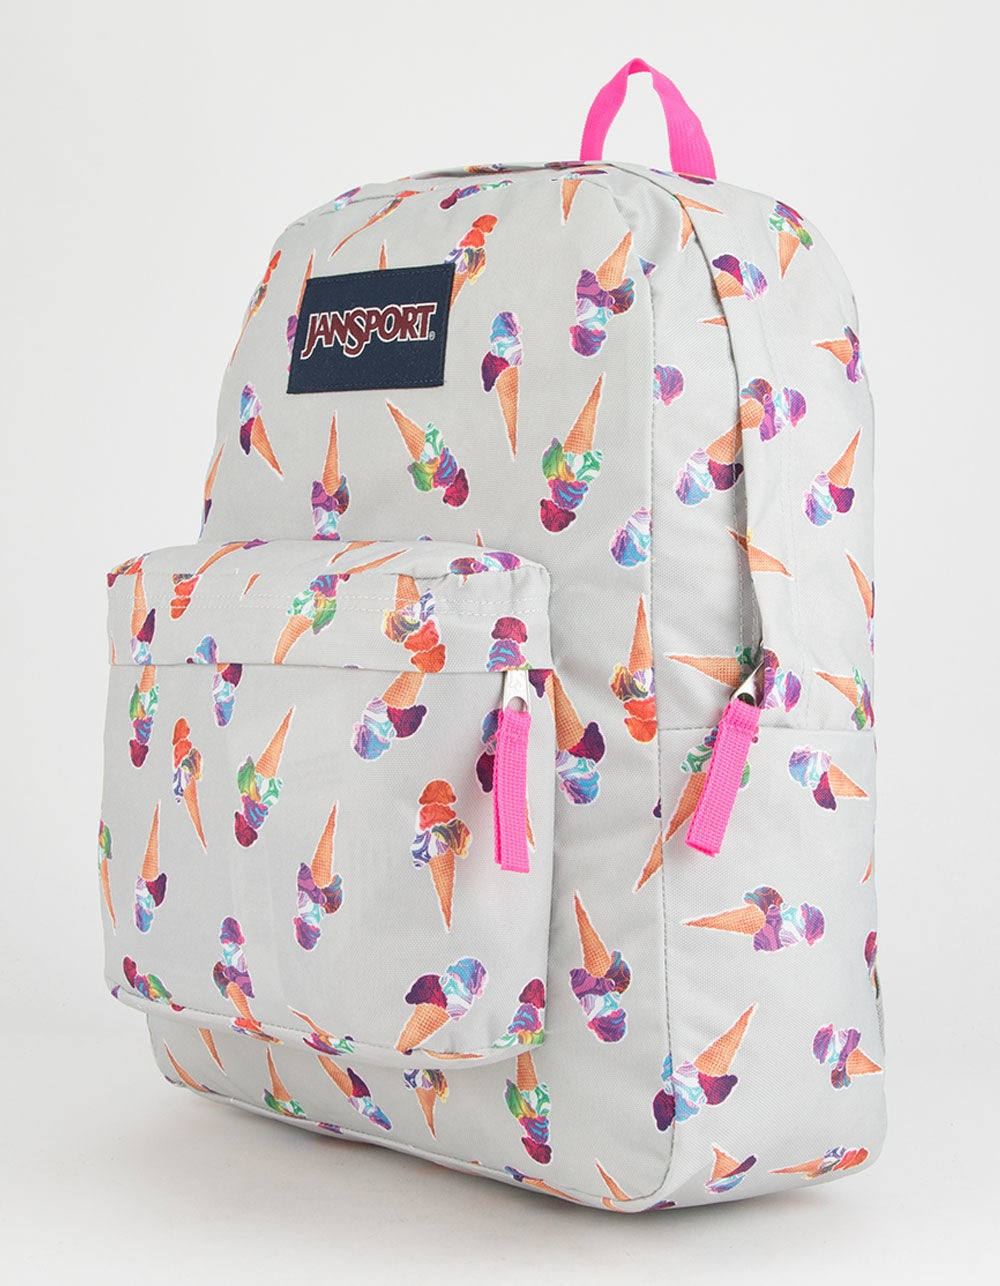 best price jansport superbreak cones and scoops backpack grey combo last chance limited sale